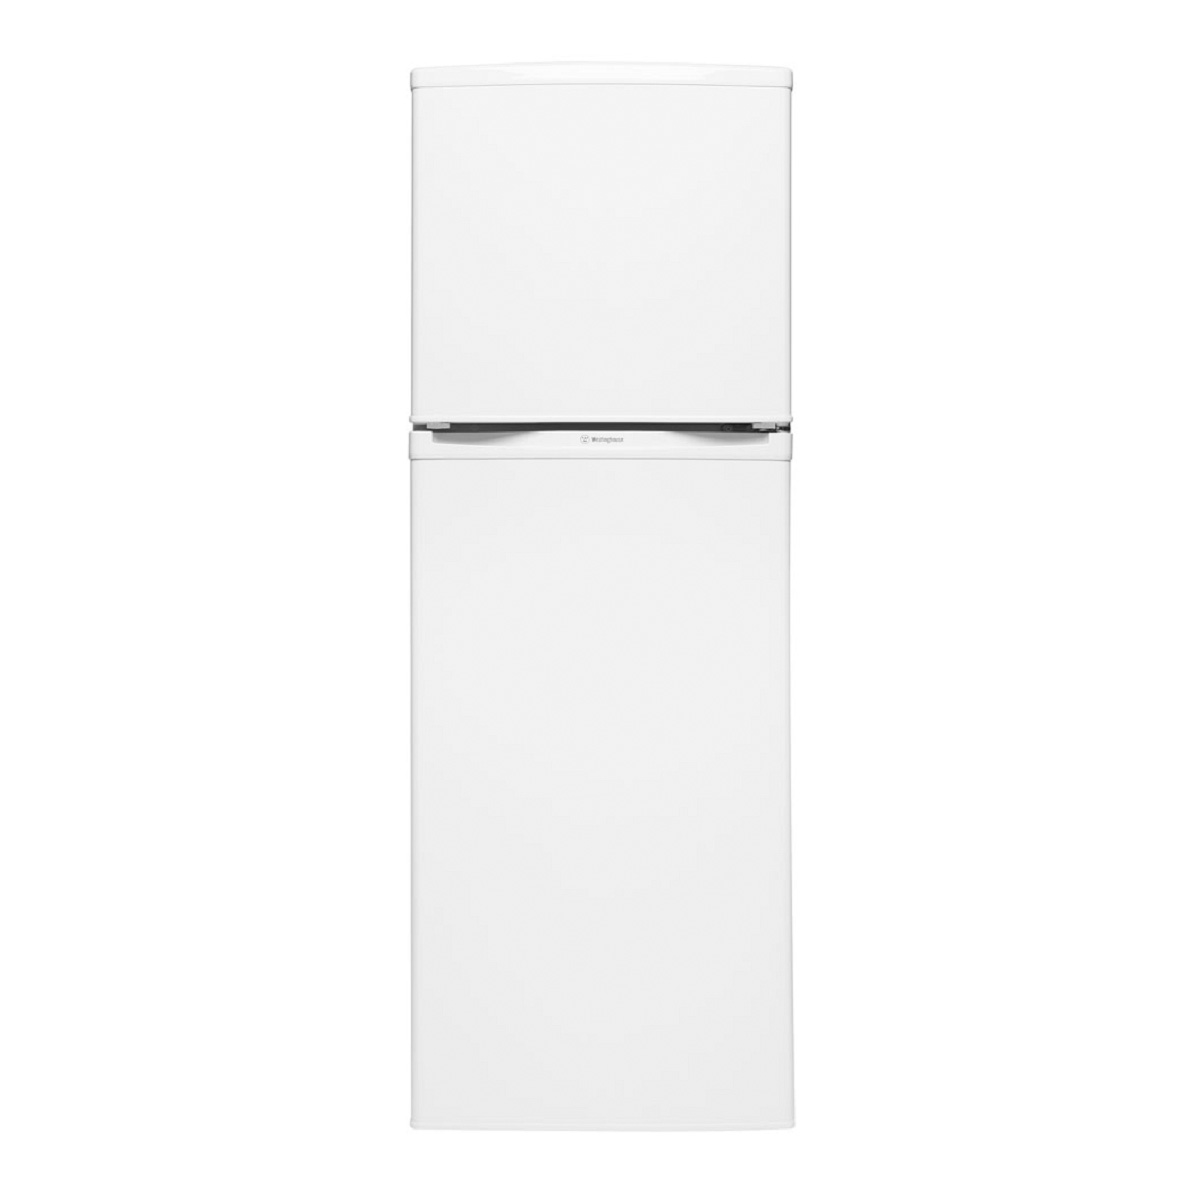 Westinghouse WTM1800WCRH 180L Top Mount Fridge